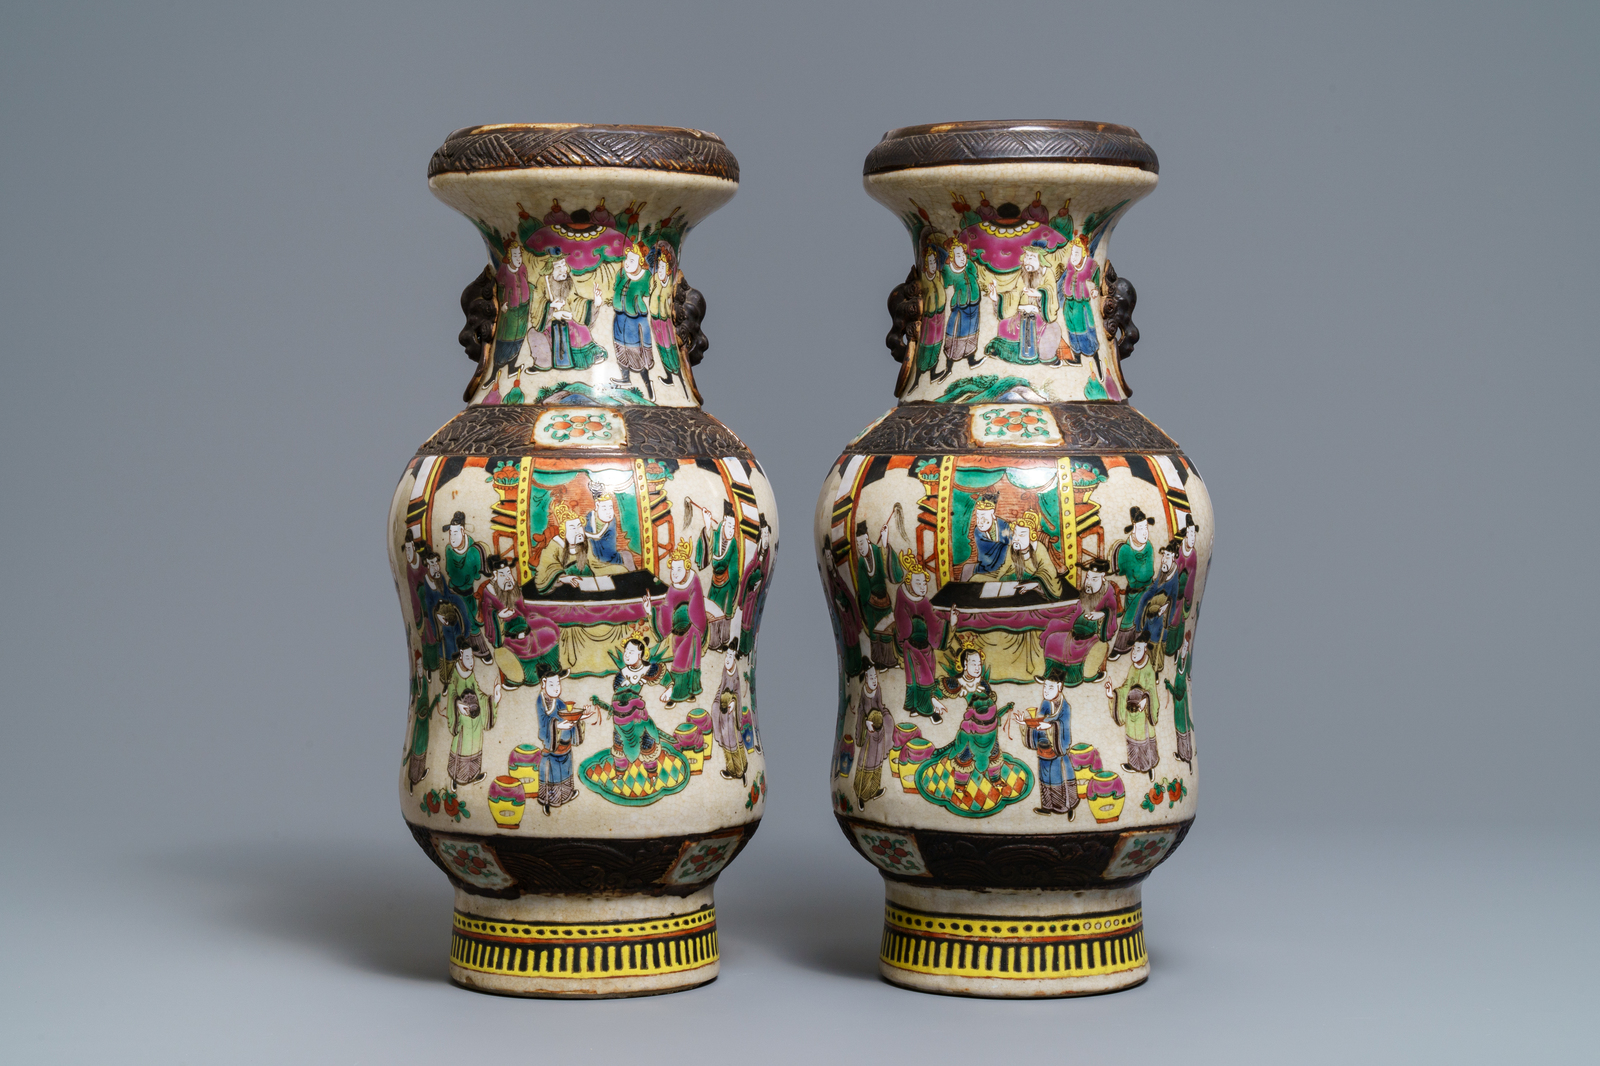 Lot 61 - A pair of Chinese Nanking famille rose vases, 19th C.